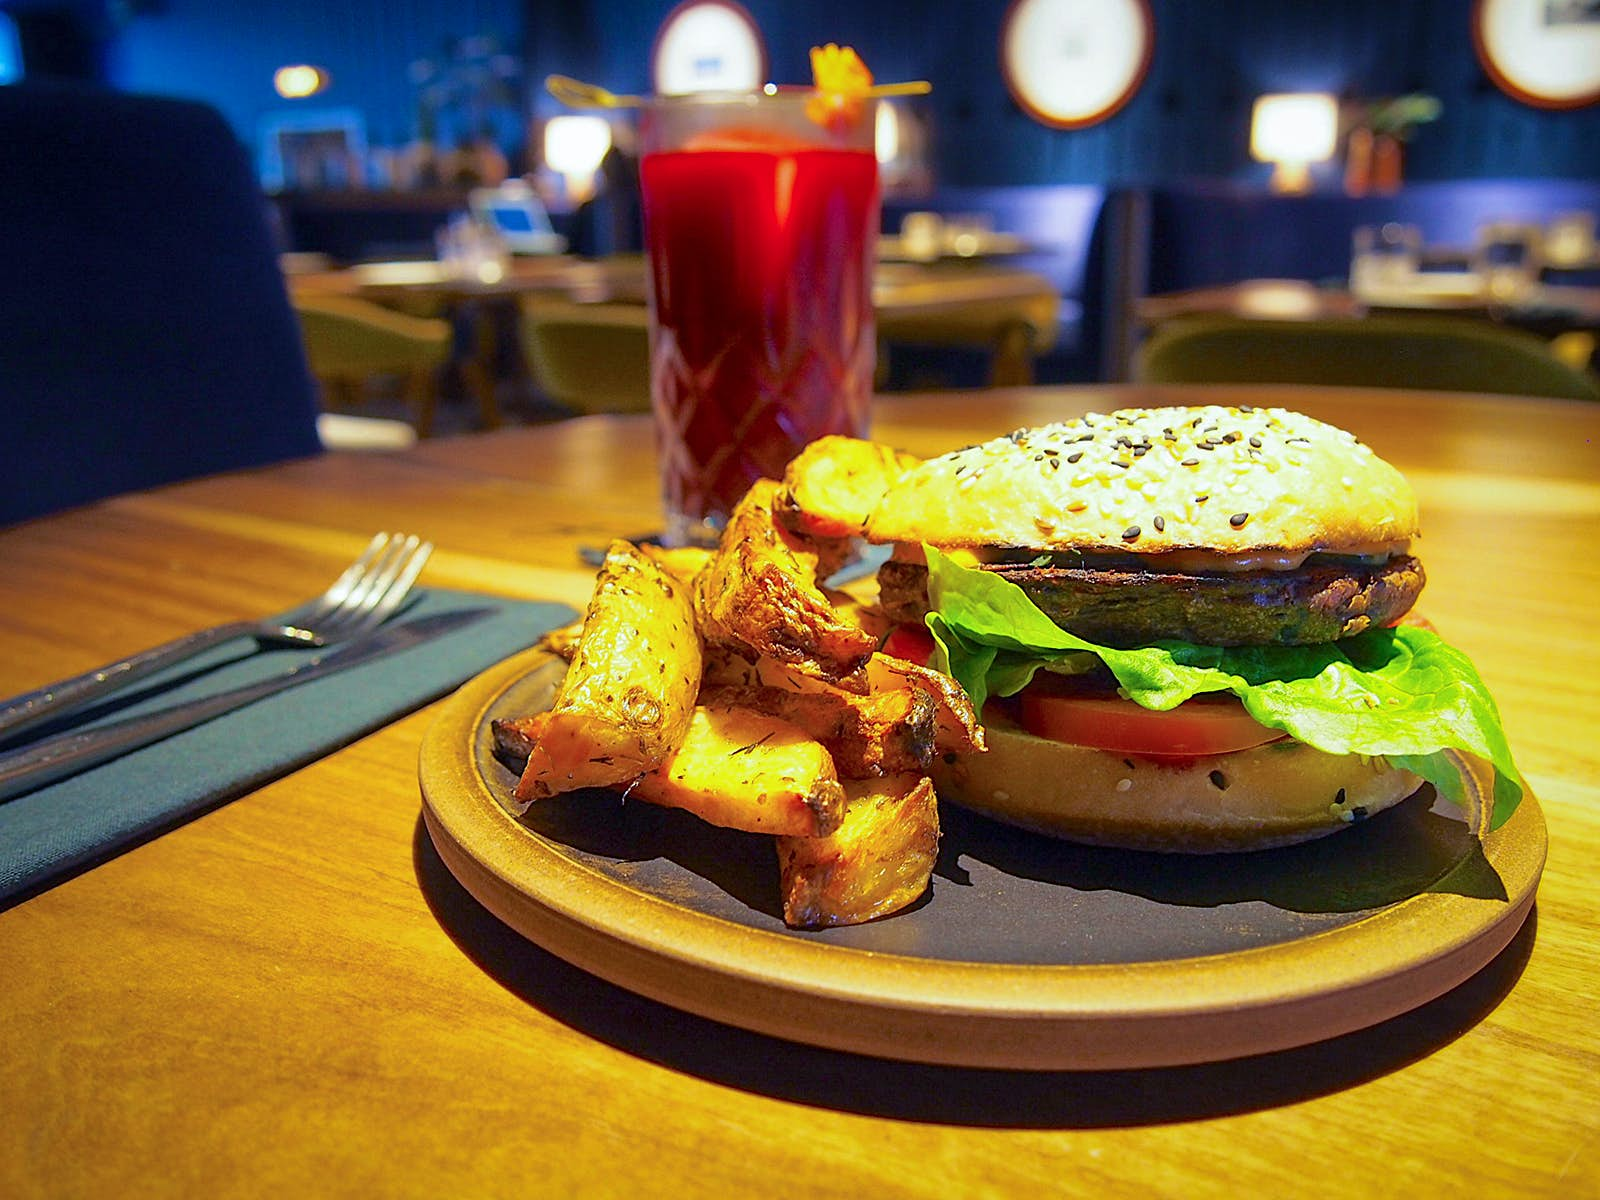 A delicious-looking veggie hamburger is surrounded by thick cut potatoes. The burger has lettuce and tomato on it